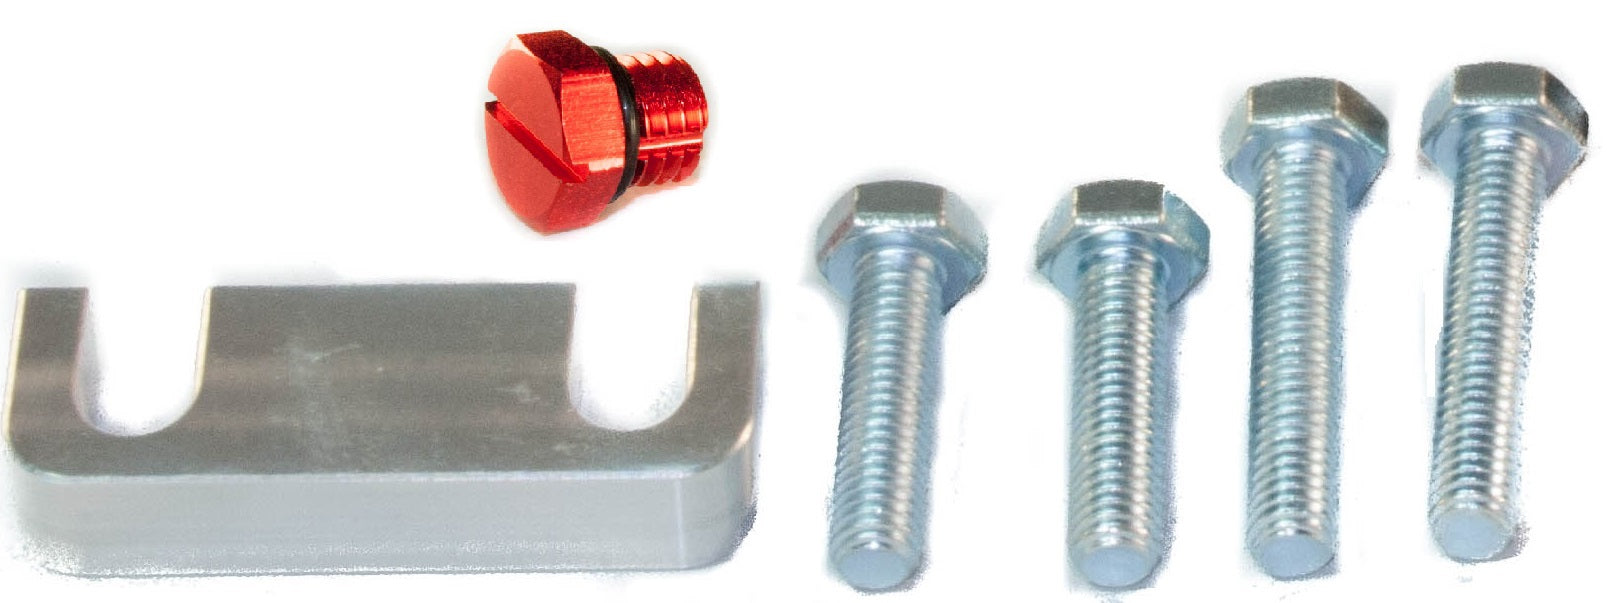 duramax fuel filter head housing spacer kit and aluminum